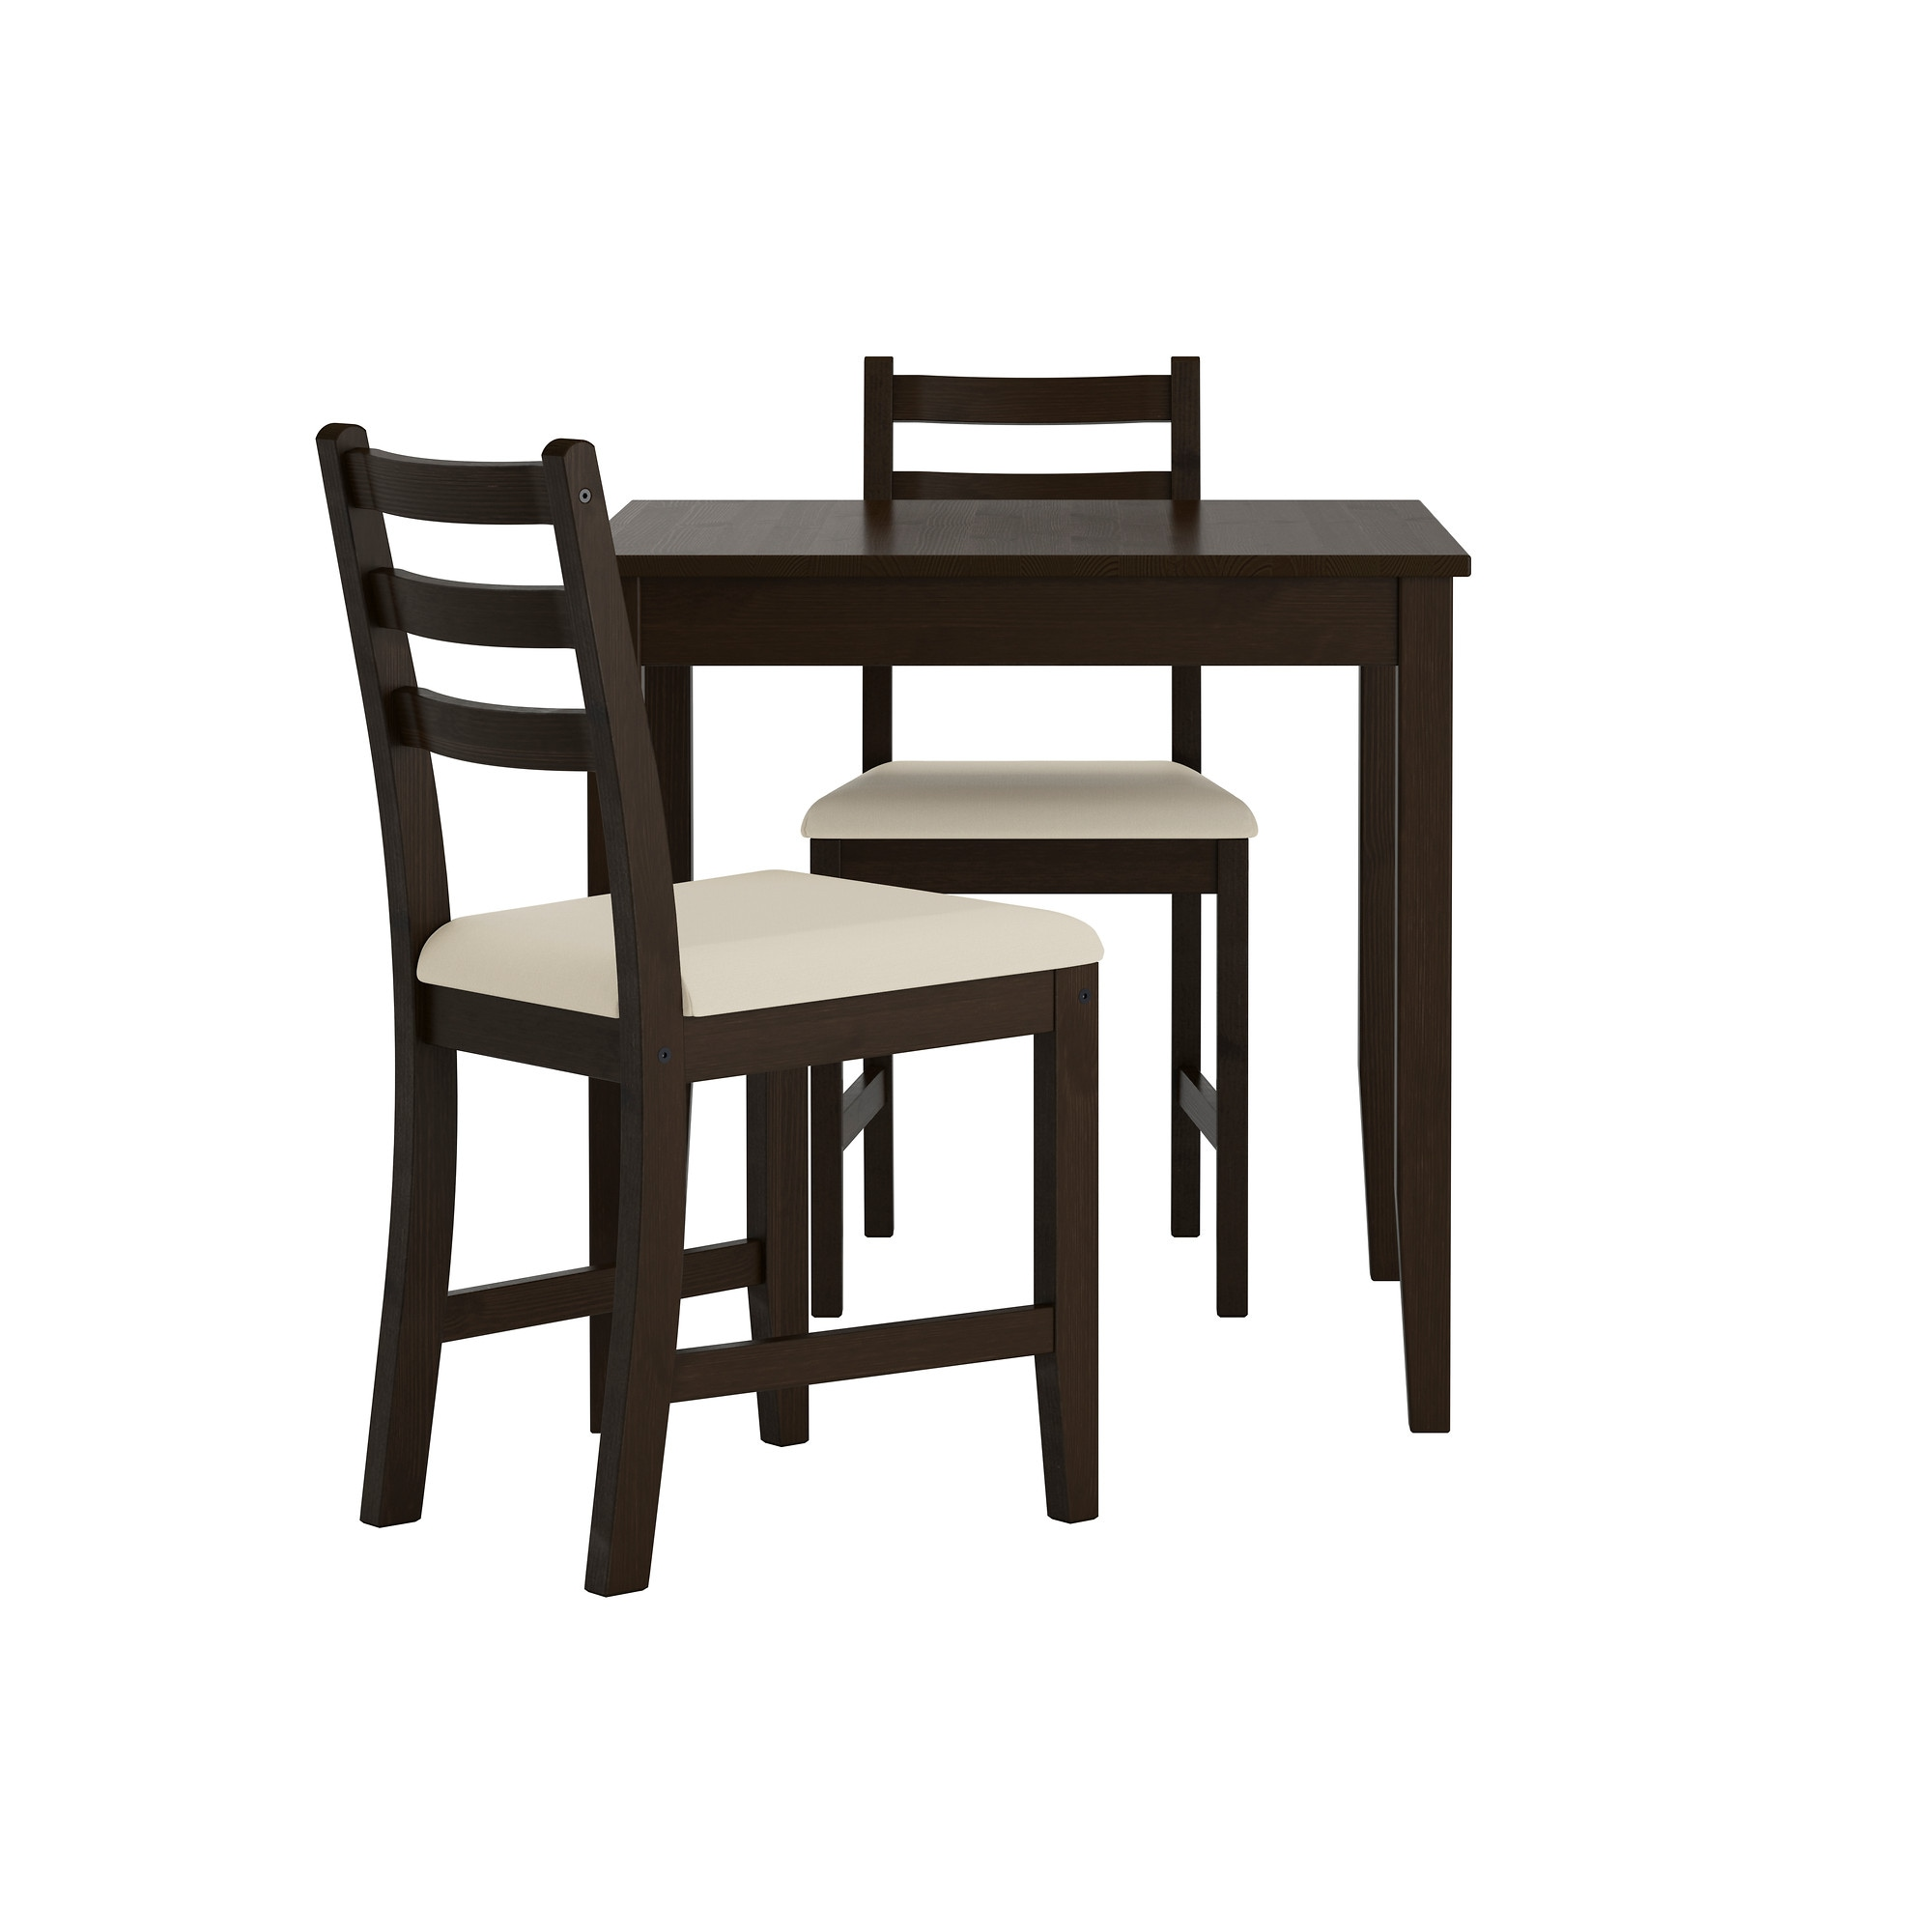 lerhamn table and 2 chairs dining sets up to 2 seats   dining sets   ikea  rh   ikea com